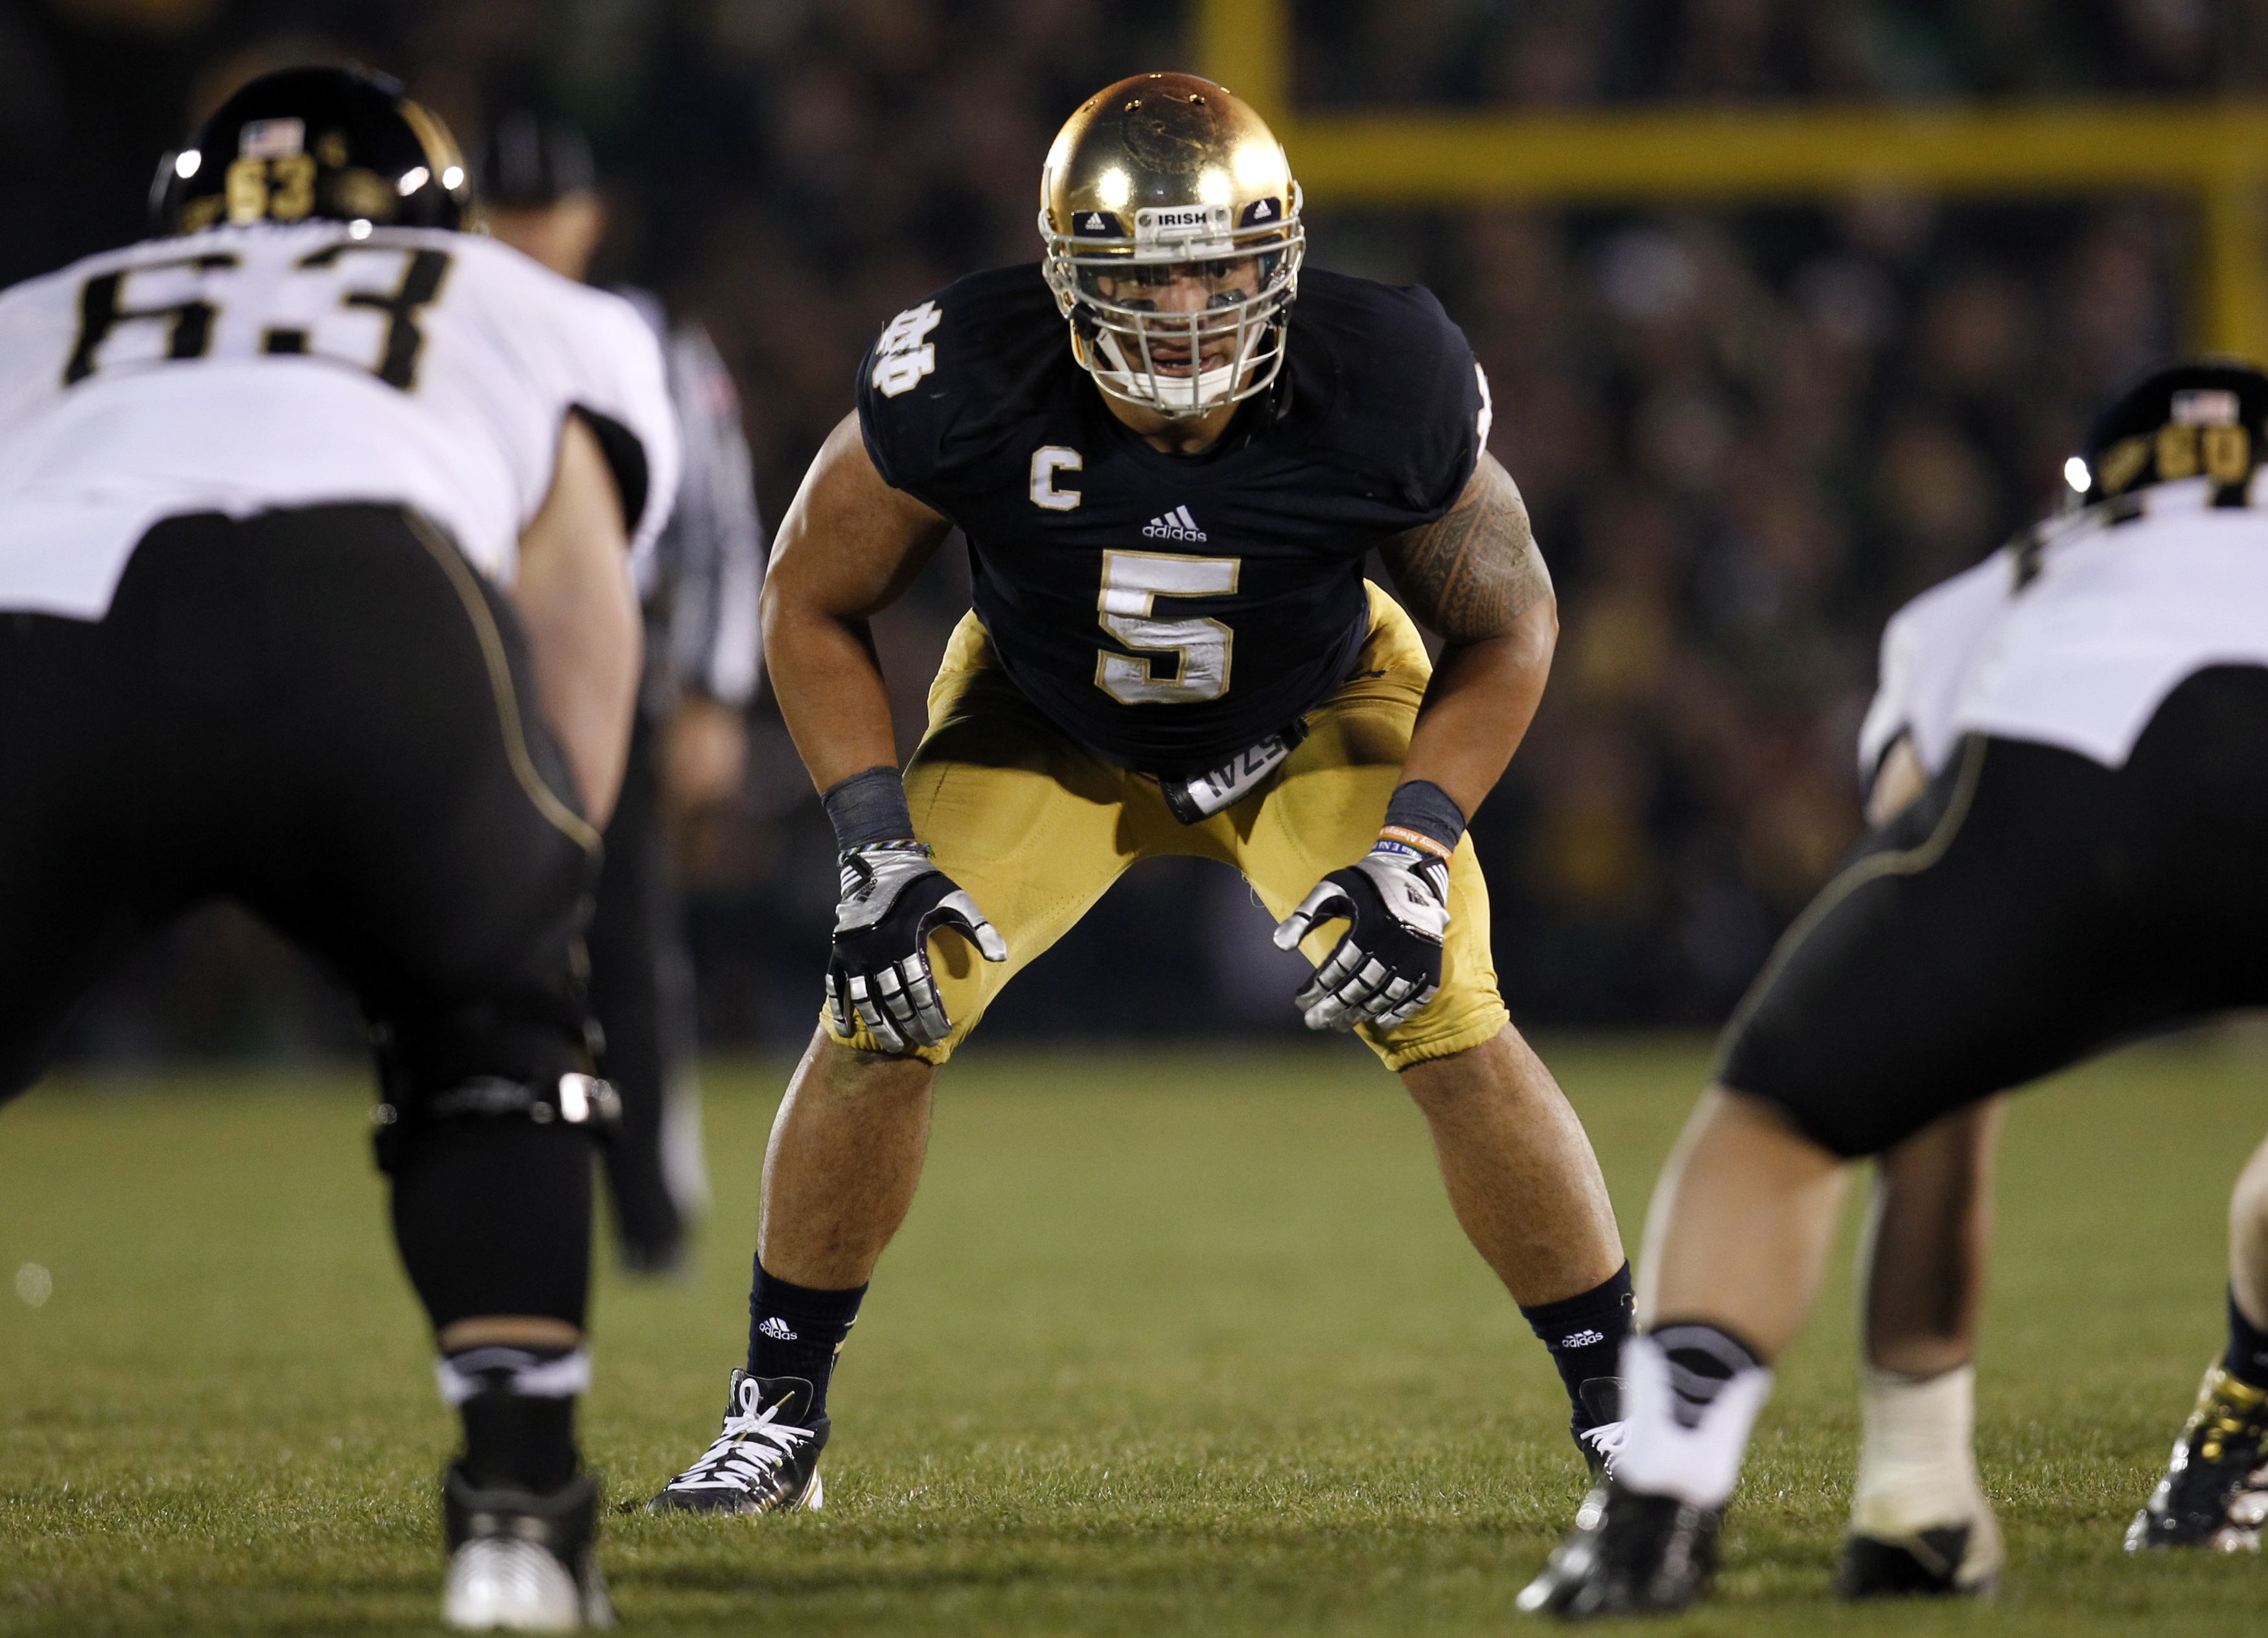 Heisman favorite Manti Te'o faces another test this week against USC. (Reuters)